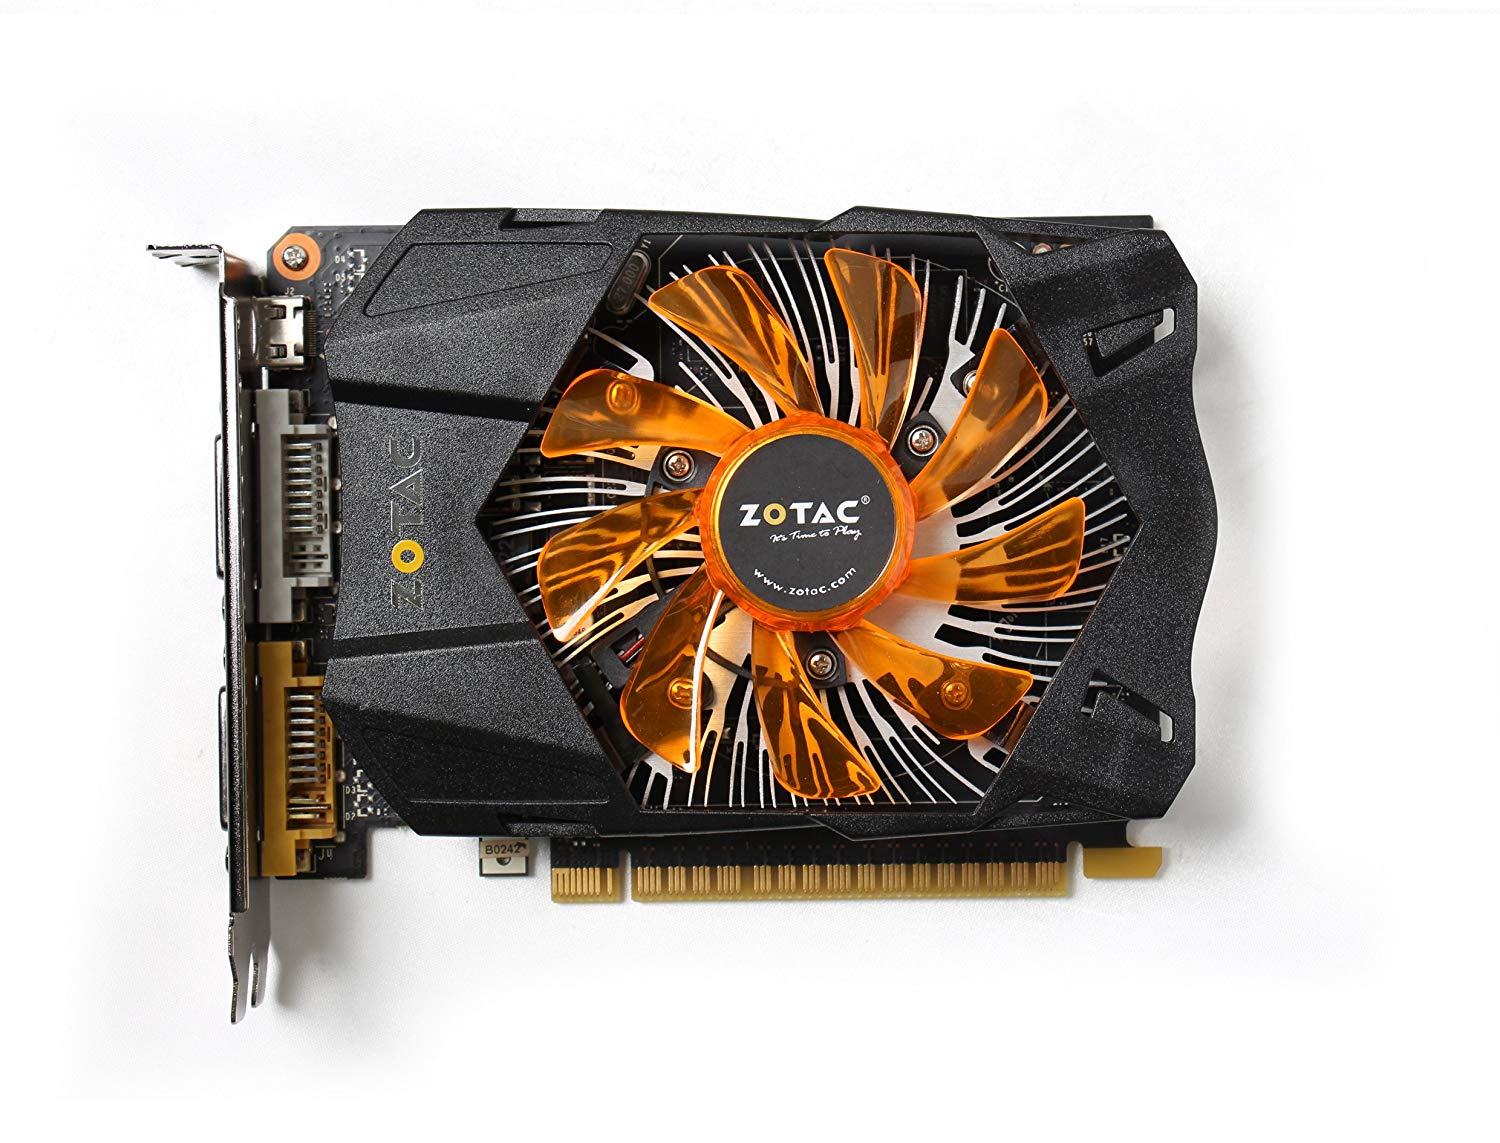 ZOTAC GeForce GTX 750 Ti 2GB Graphics Card